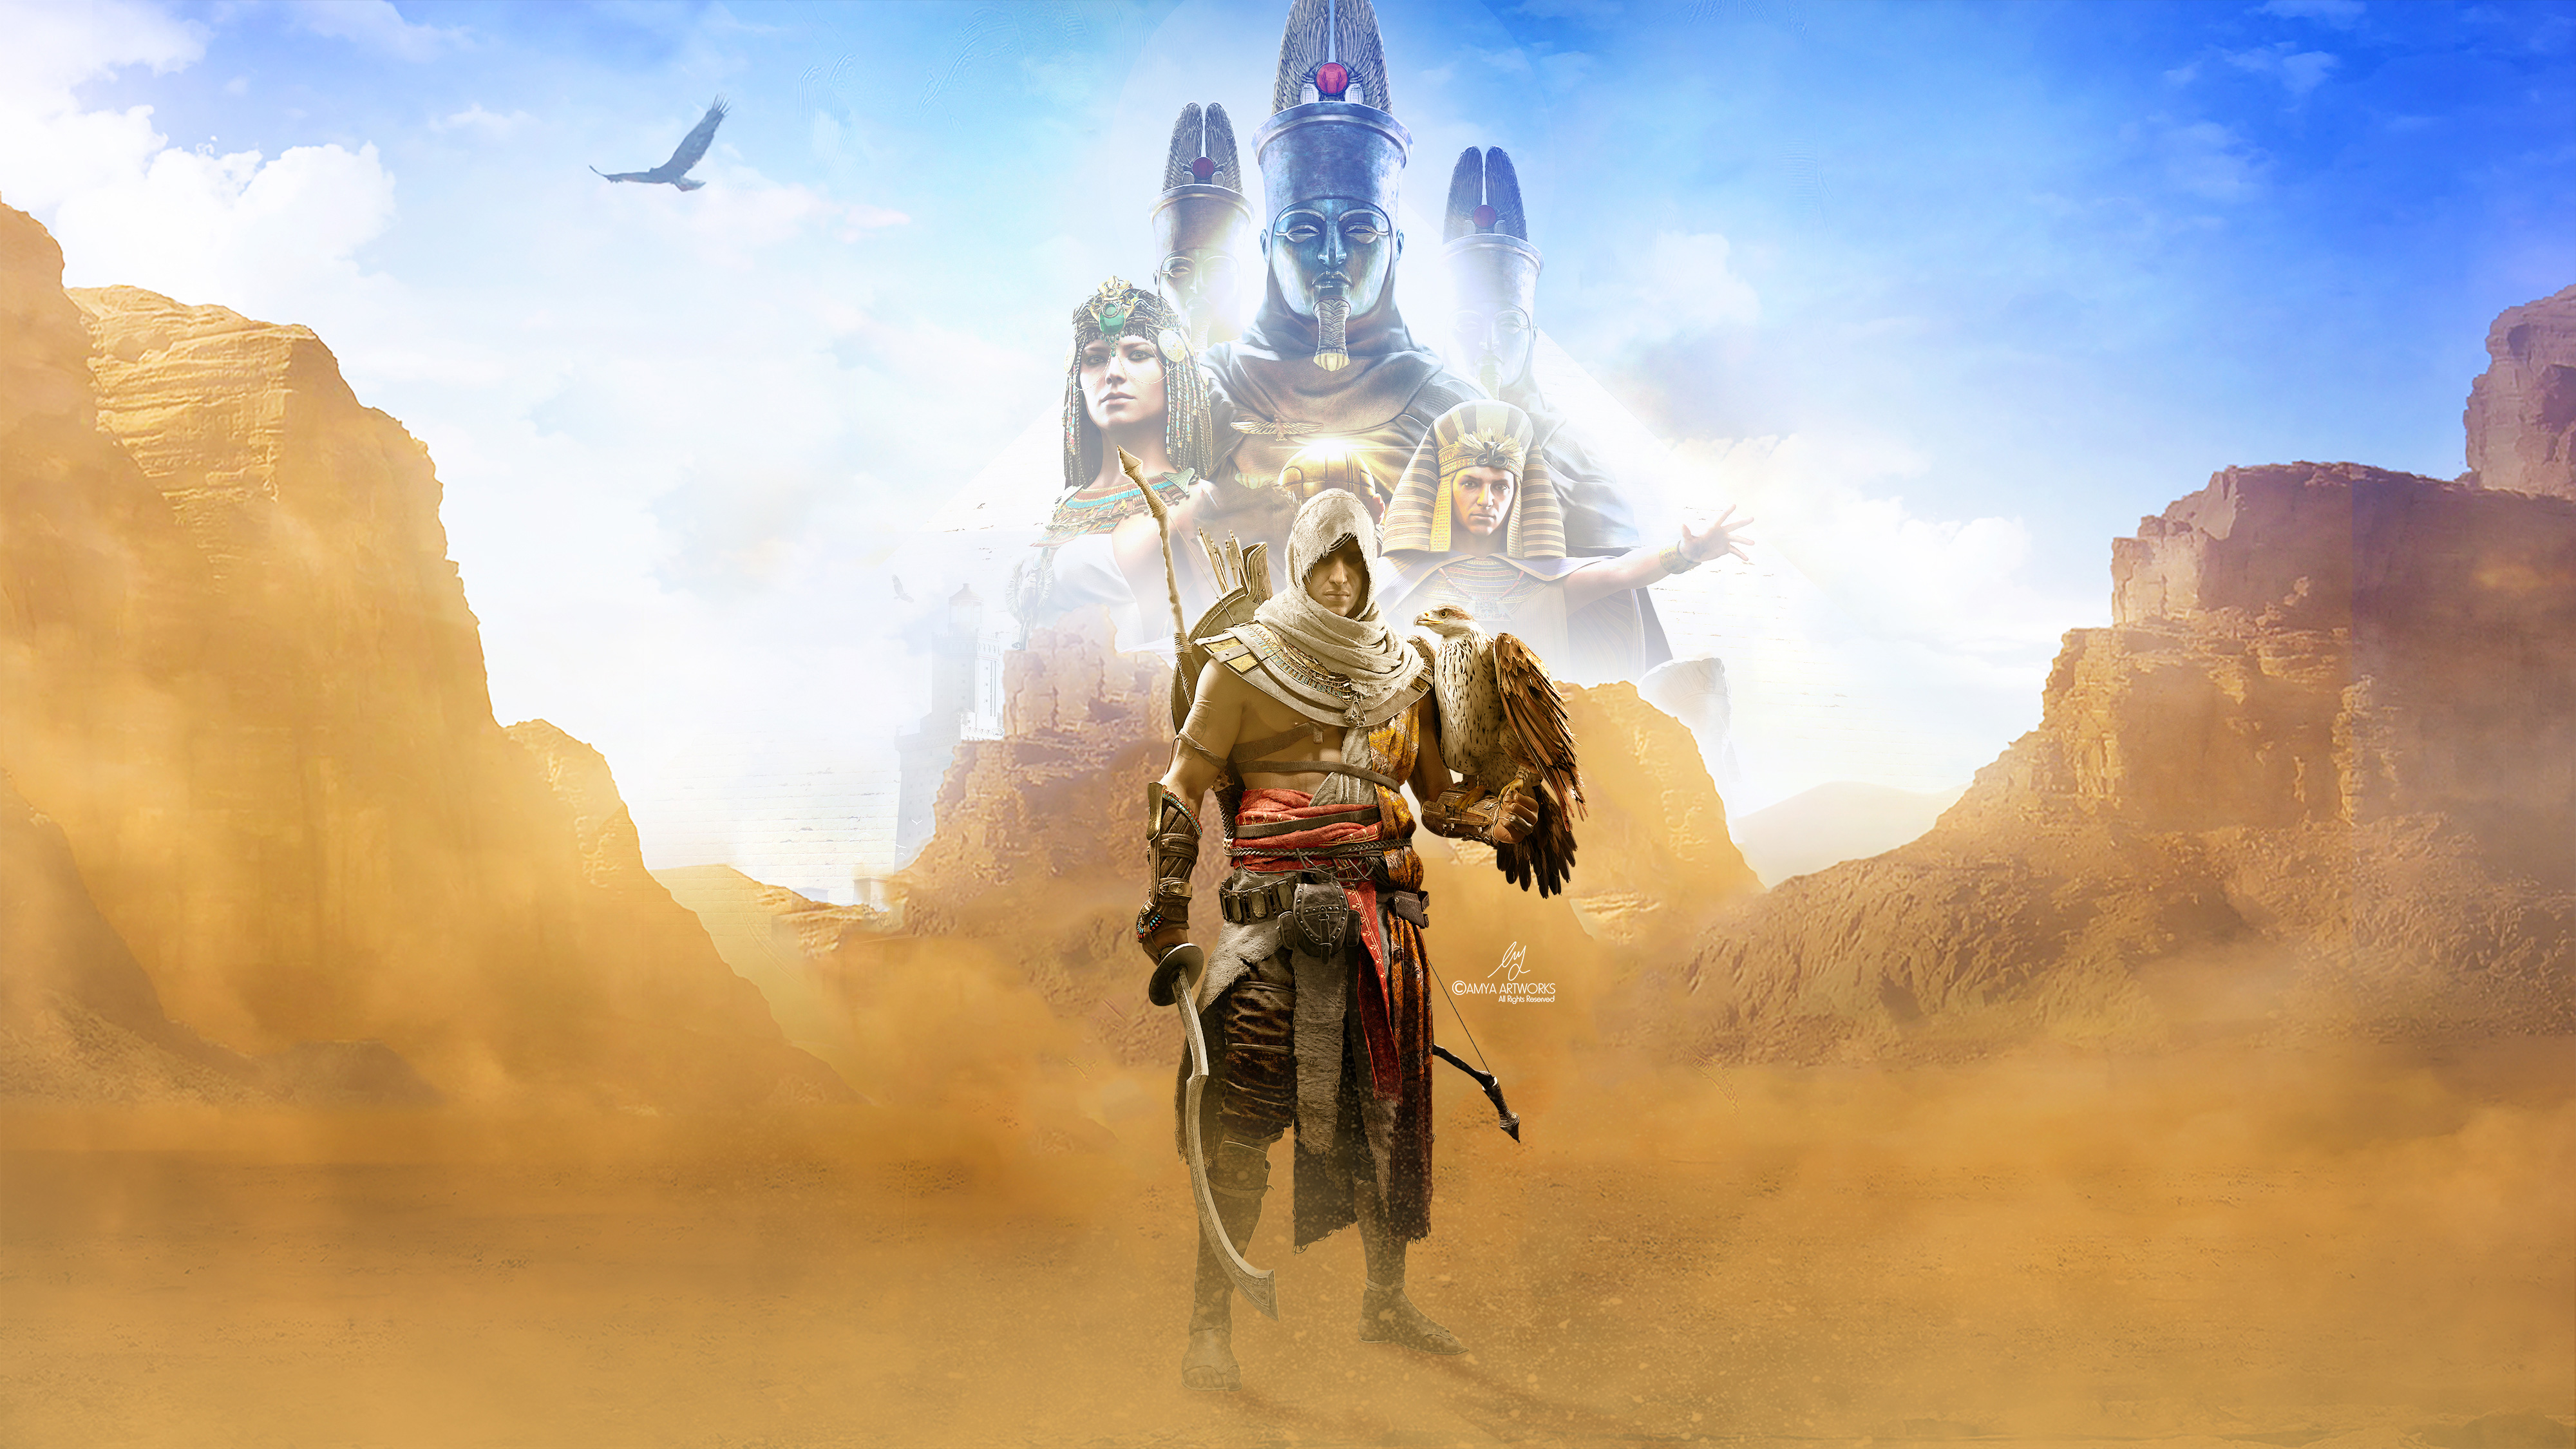 1920x1080 4k Assassins Creed Origins Laptop Full Hd 1080p Hd 4k Wallpapers Images Backgrounds Photos And Pictures